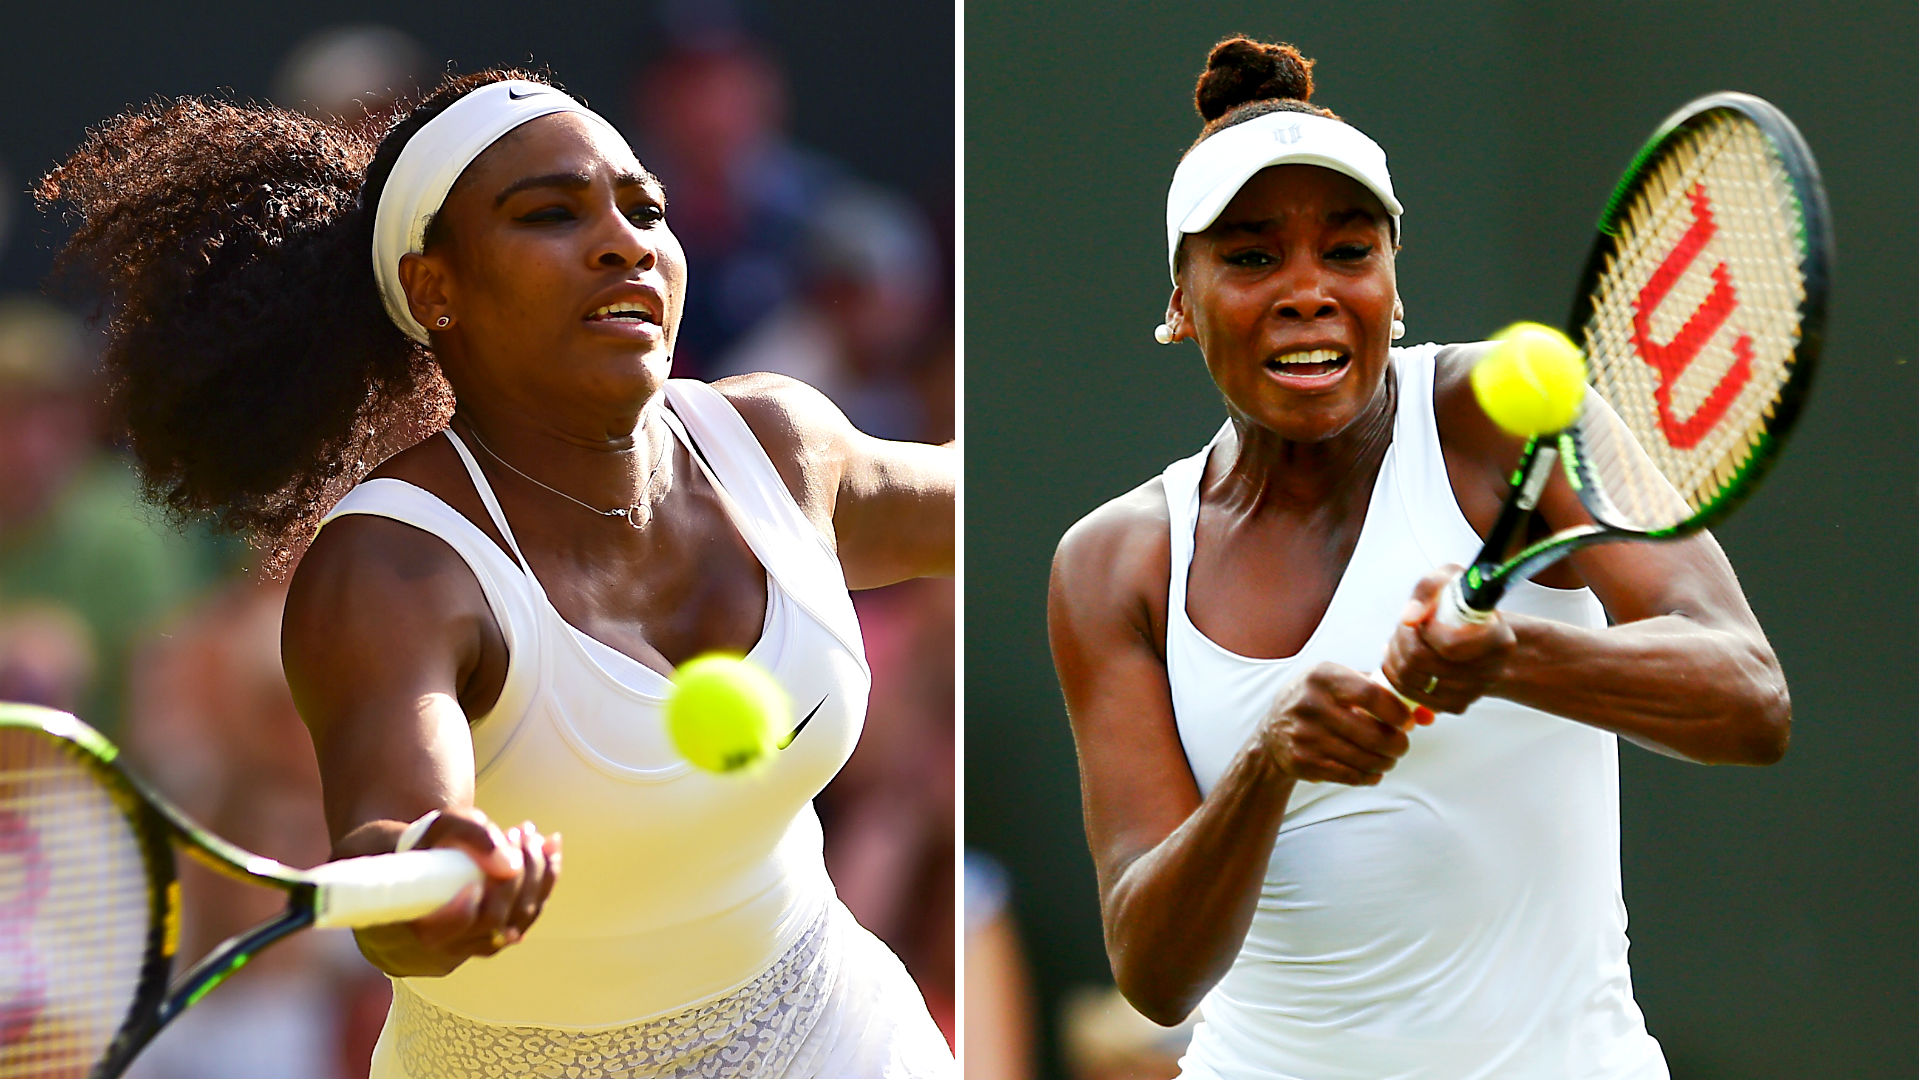 williams-sisters070515-getty-ftr.jpg